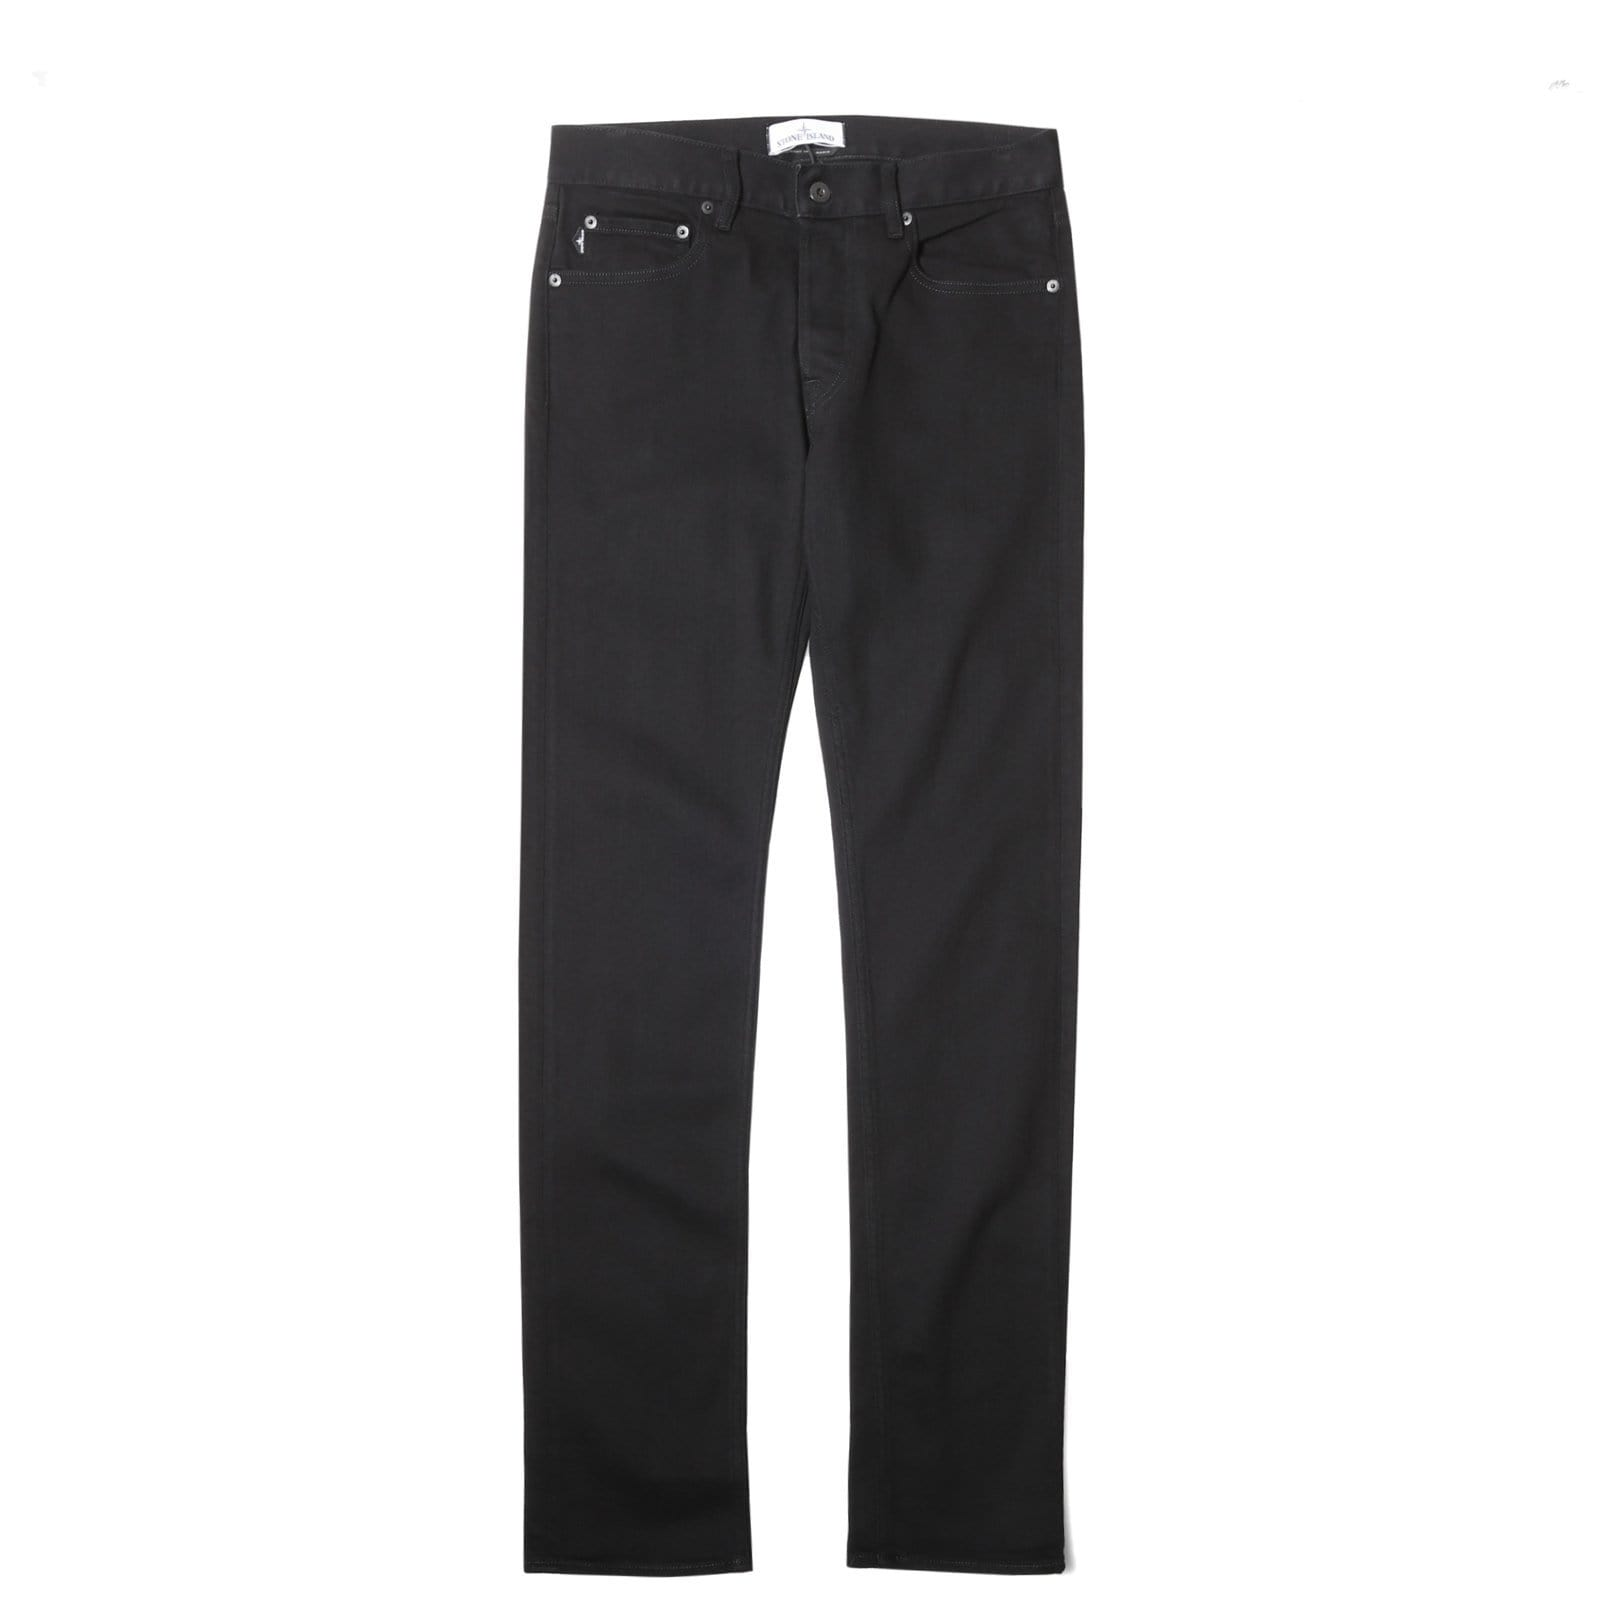 Stone Island 5 POCKET PANTS6915J1BQ1 Black